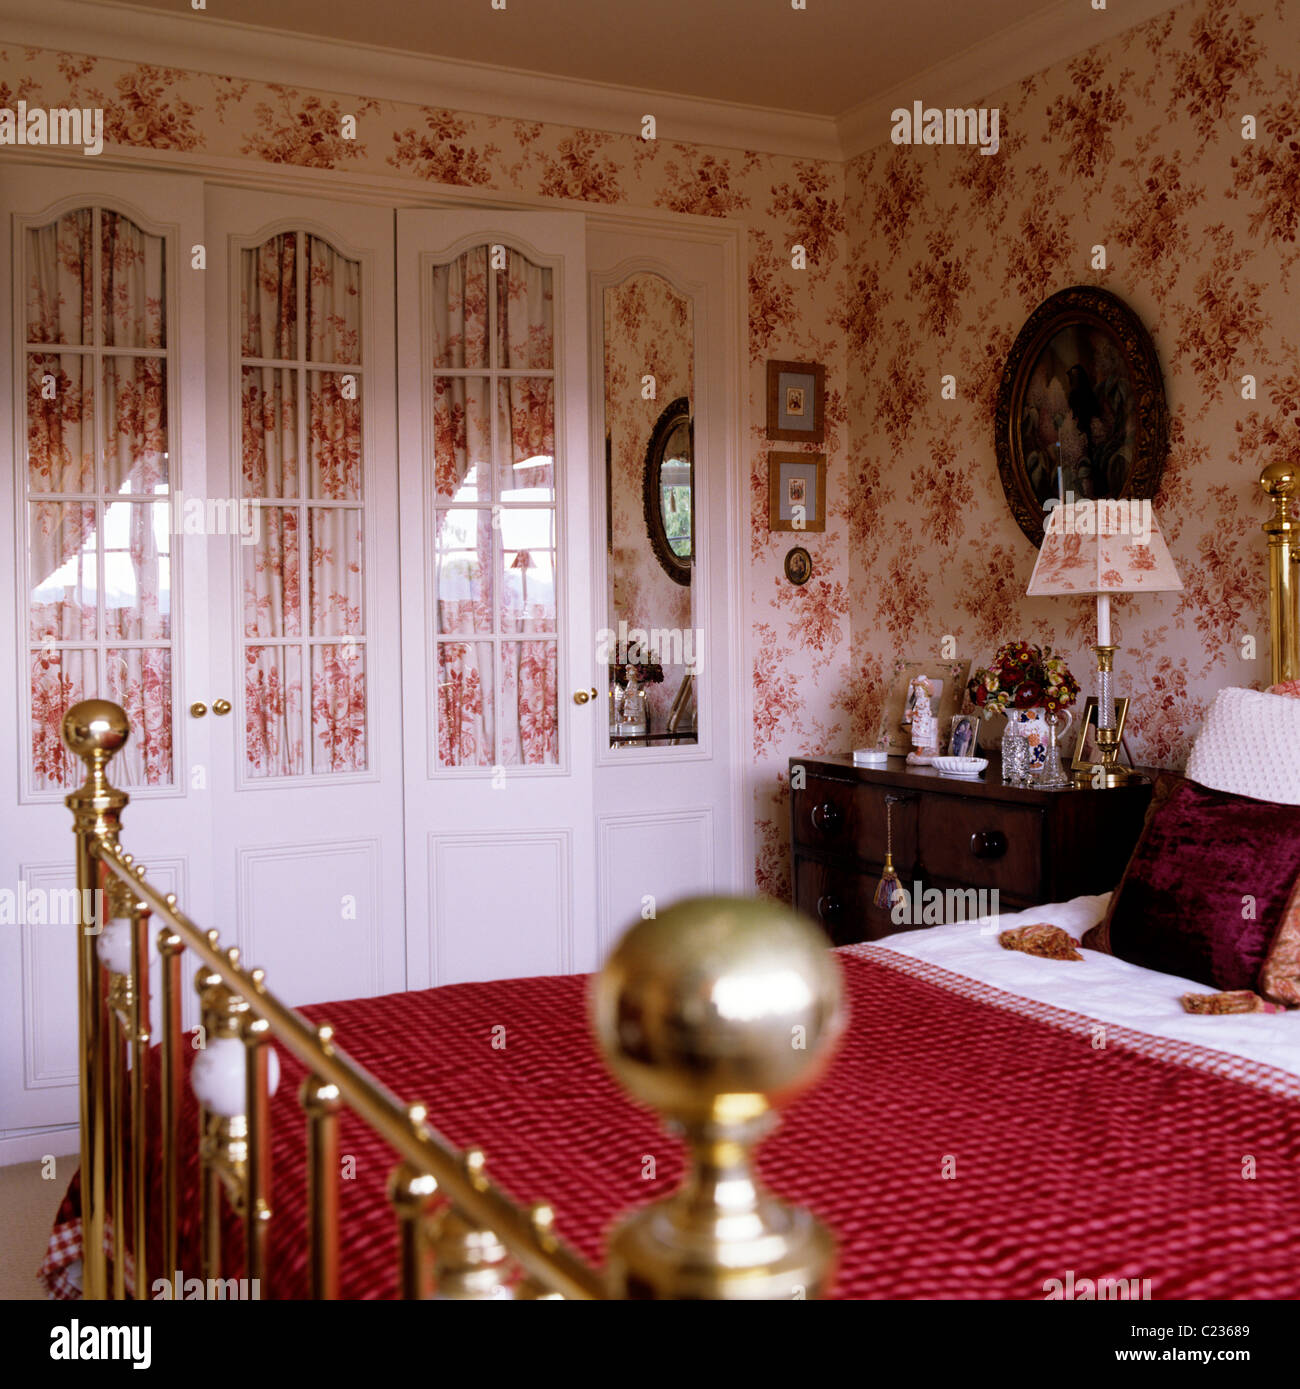 Red quilt on br framed bed in bedroom with toile de jouy ... on quilt pink, quilt books, quilt home, quilt halloween, quilt bedroom design, quilt room ideas, quilt kitchen, quilt storage, quilt color, quilt fabrics, quilt modern, quilt green,